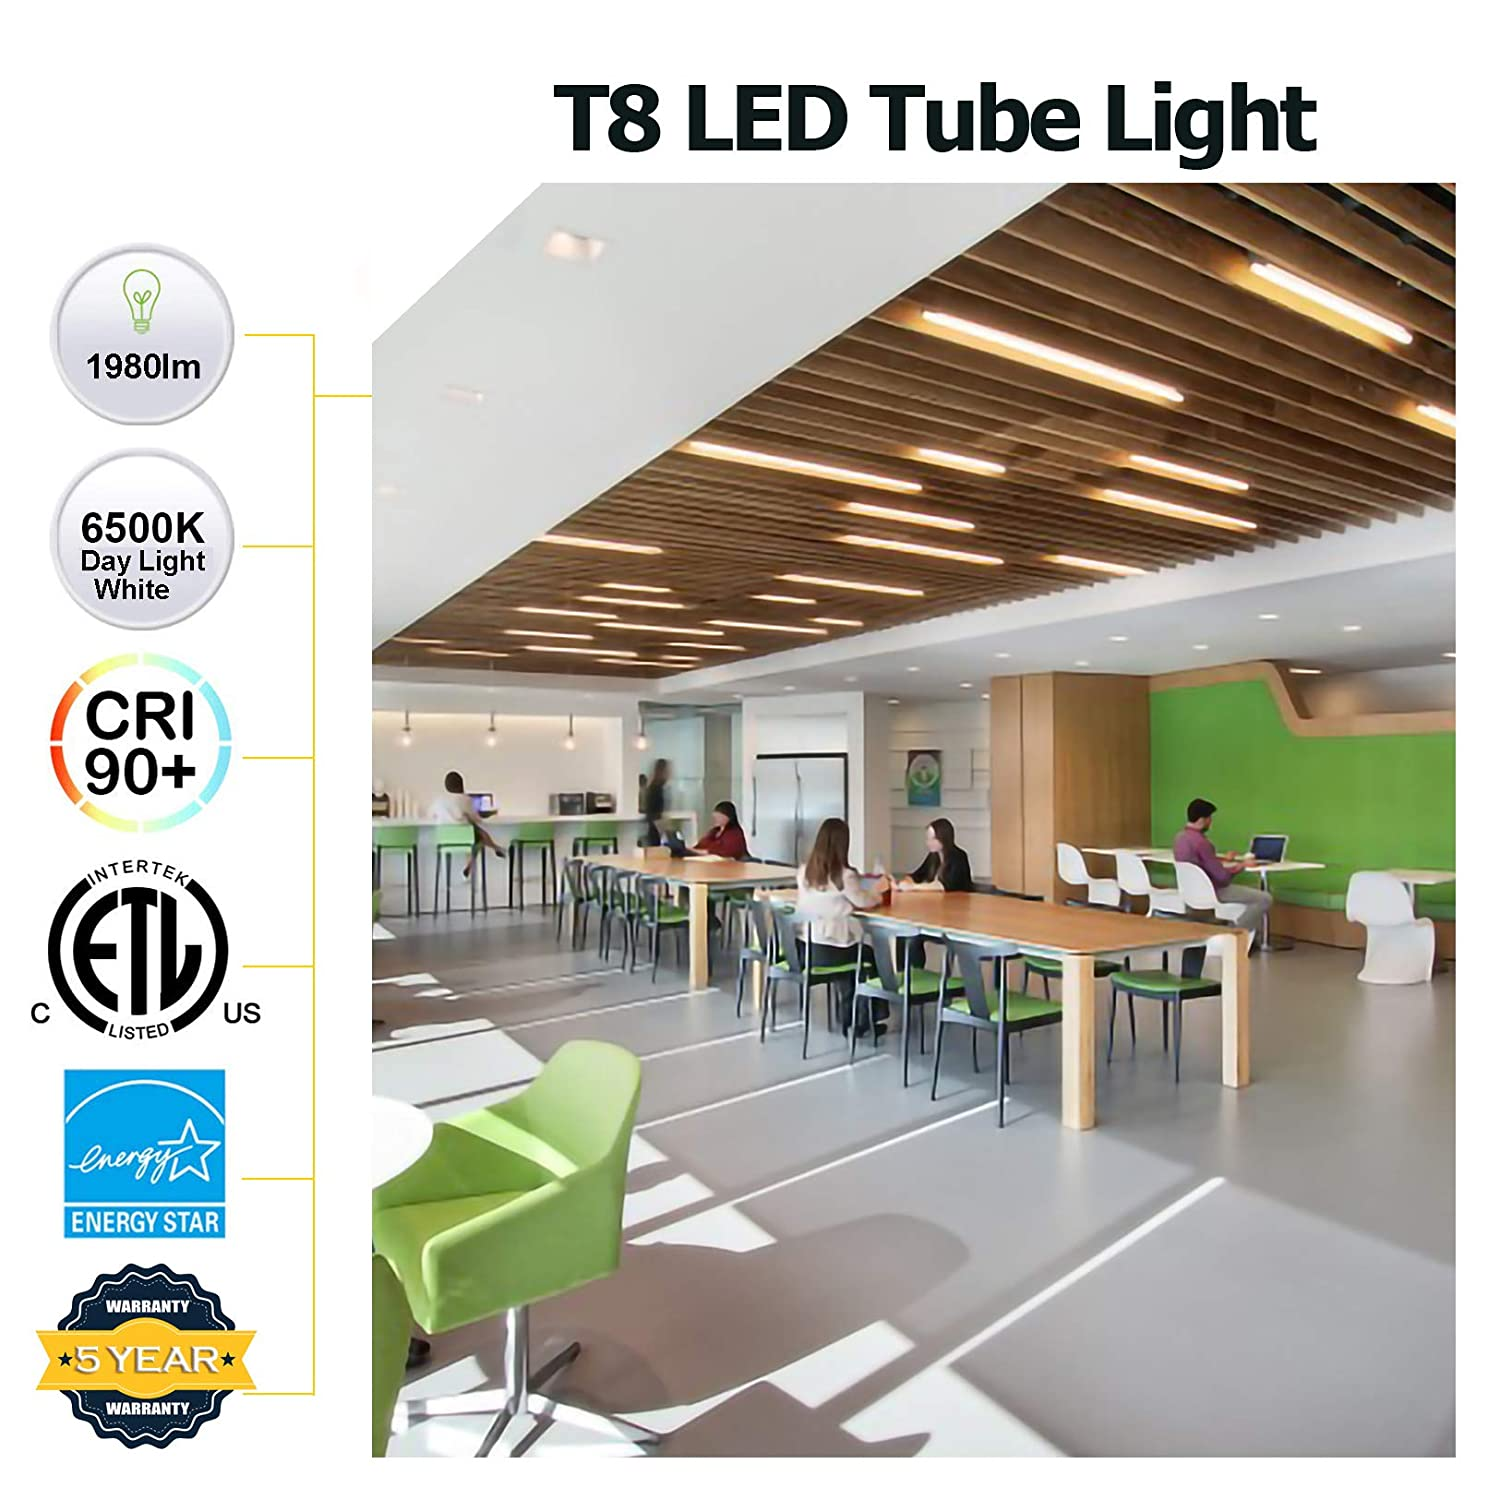 12 Pack WDG T8 Led Bulbs,5FT 24W Beer Cooler Lamp with G13 Bi-pin Base,ETL Listed Day Light White 6500K Dual-end Powered 5 Tube Light,Replacements for T10 T12 Fluorescent Bulb Frosty Cover